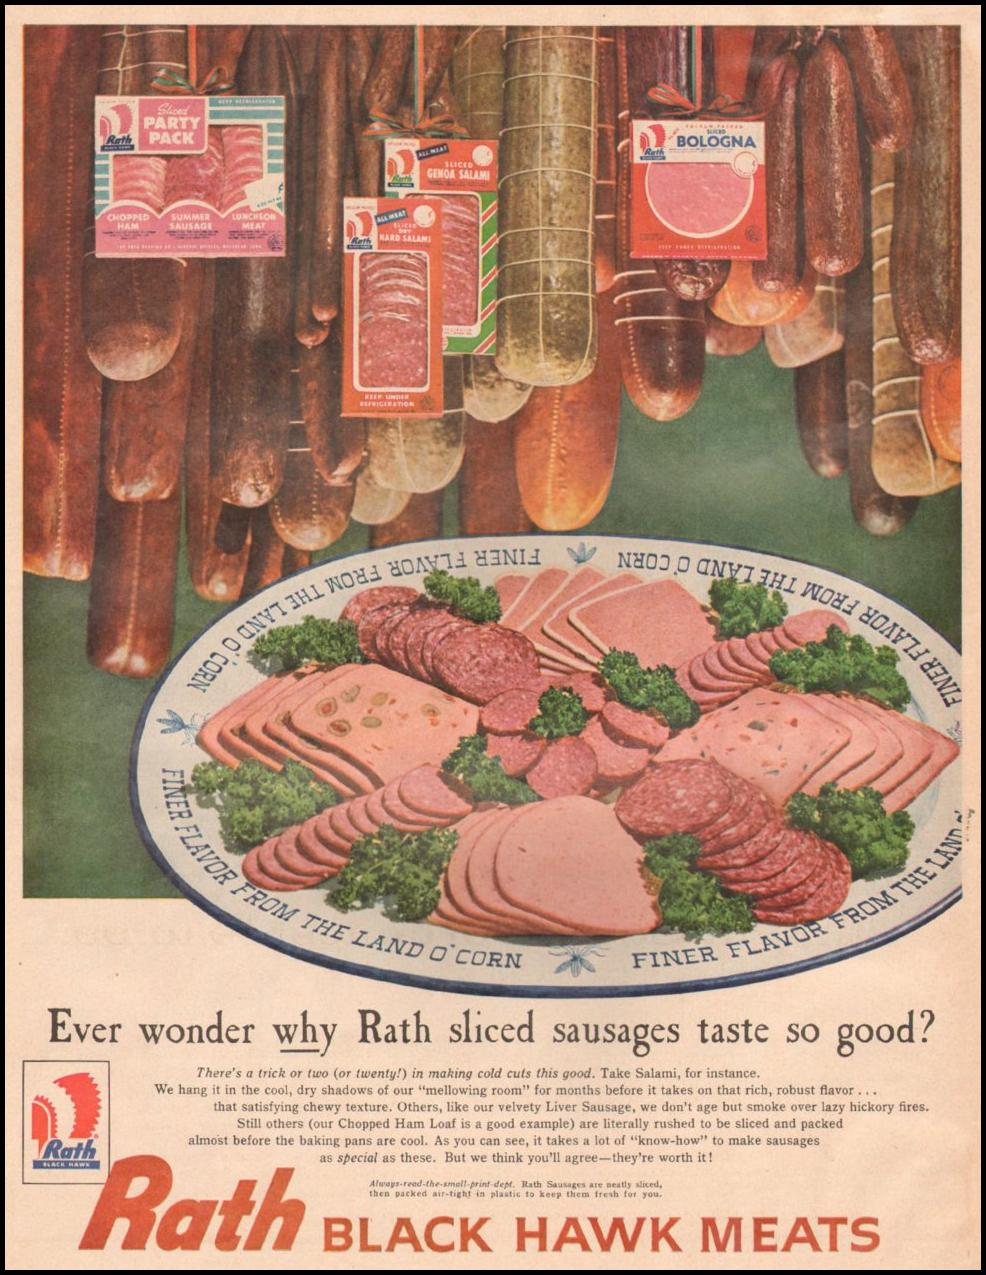 RATH BLACK HAWK MEATS LIFE 05/19/1958 p. 6